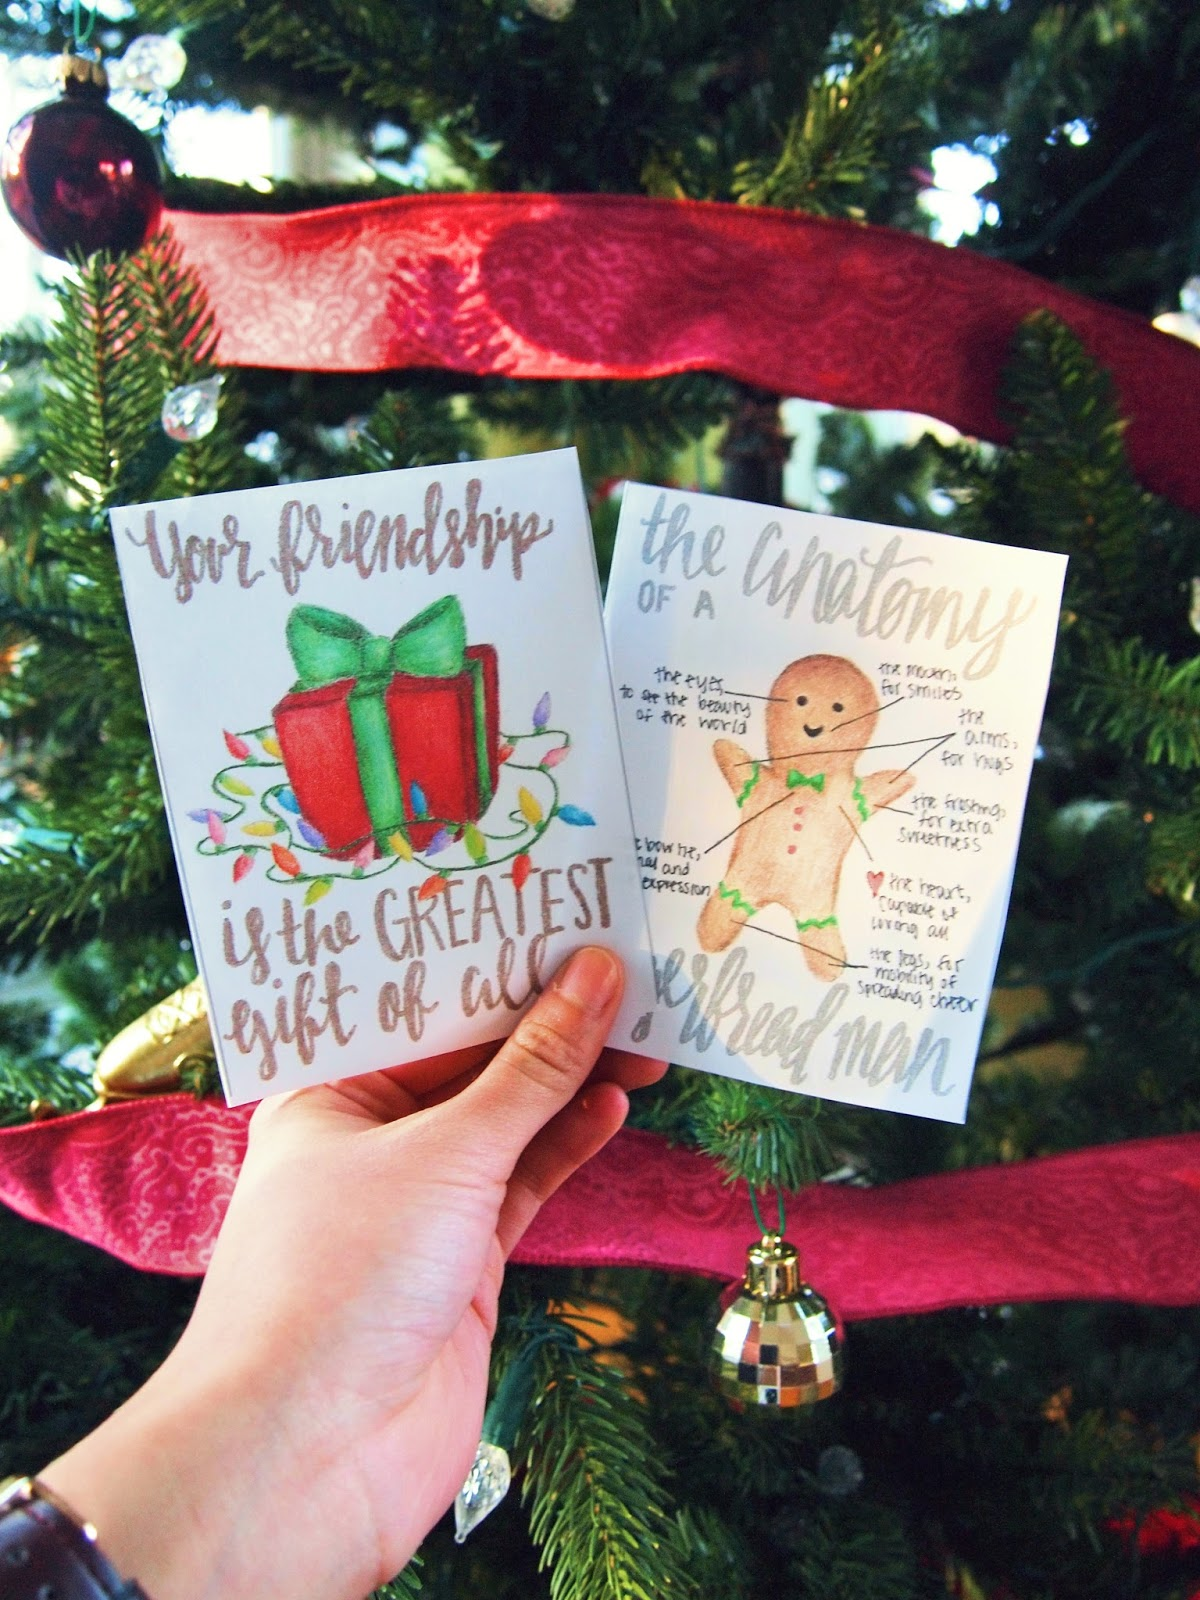 How to Make a Holiday Card Meaningful